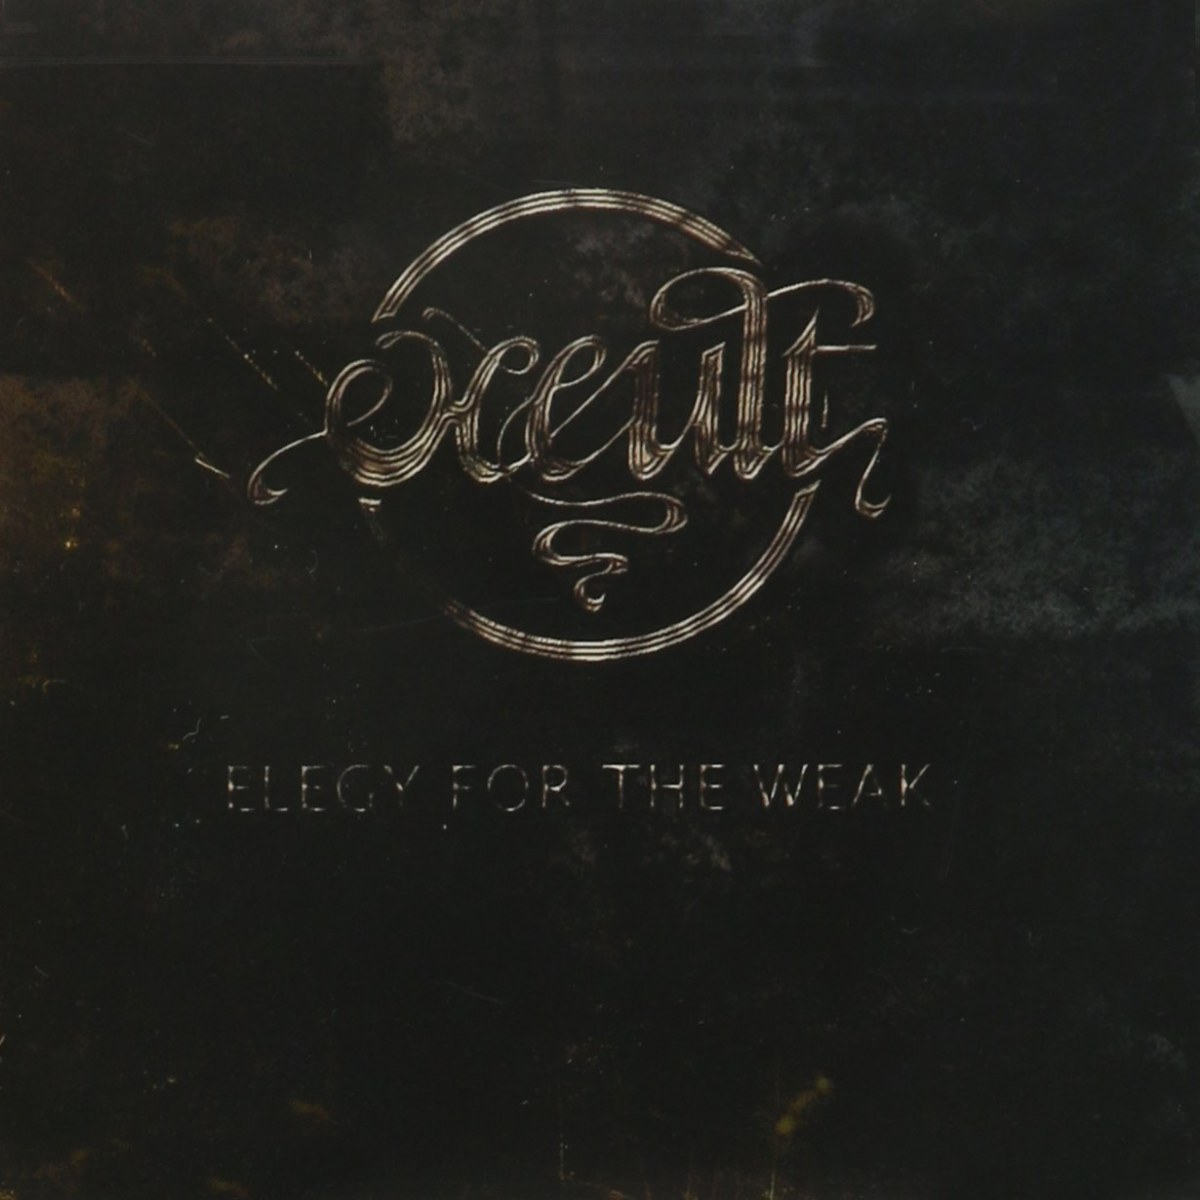 Review for Occult (NLD) - Elegy for the Weak